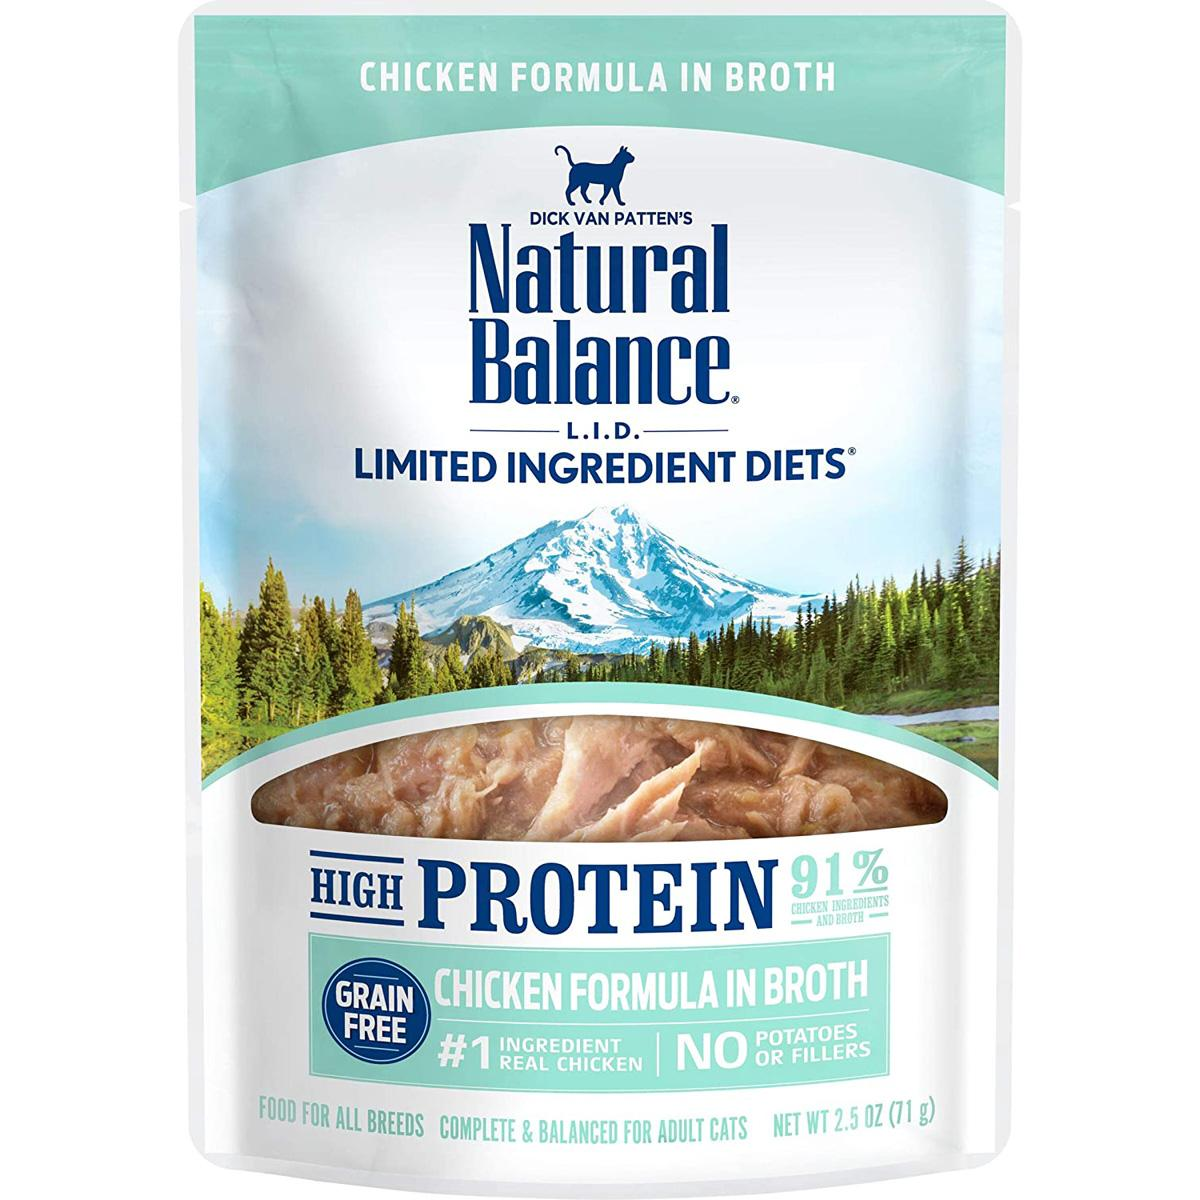 24 Natural Balance LID High Protein Wet Cat Food for $18.49